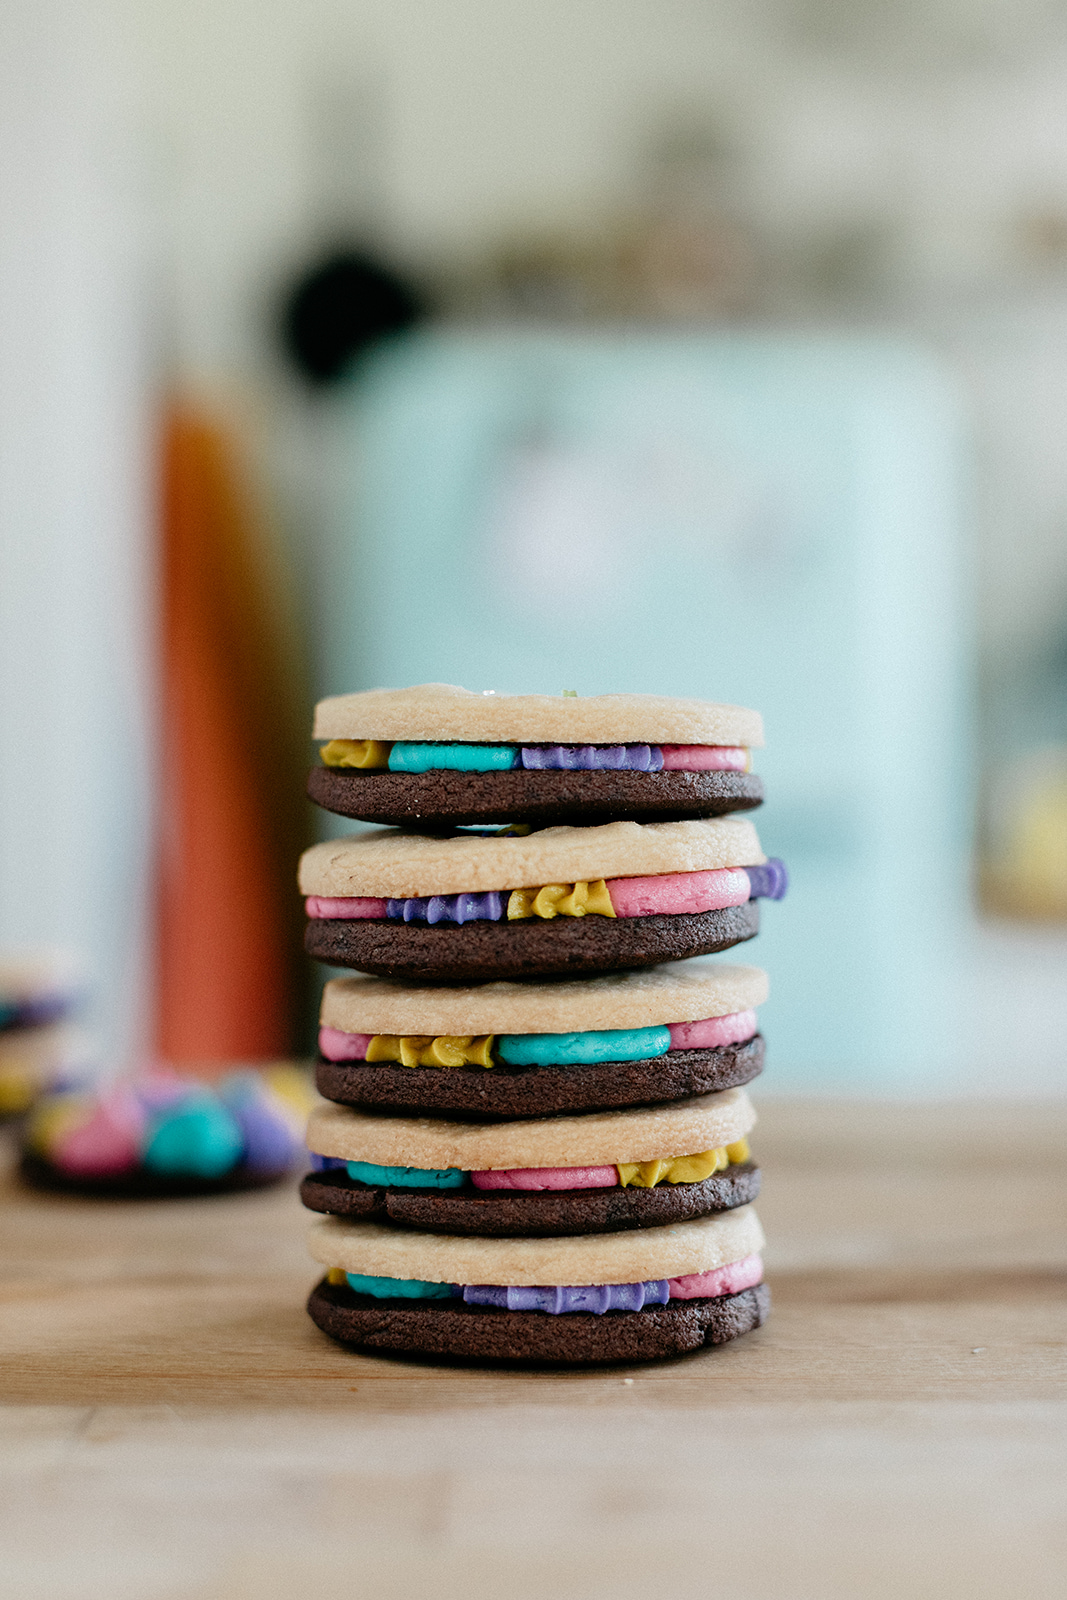 molly-yeh-shakespeare-cookies-10.jpg